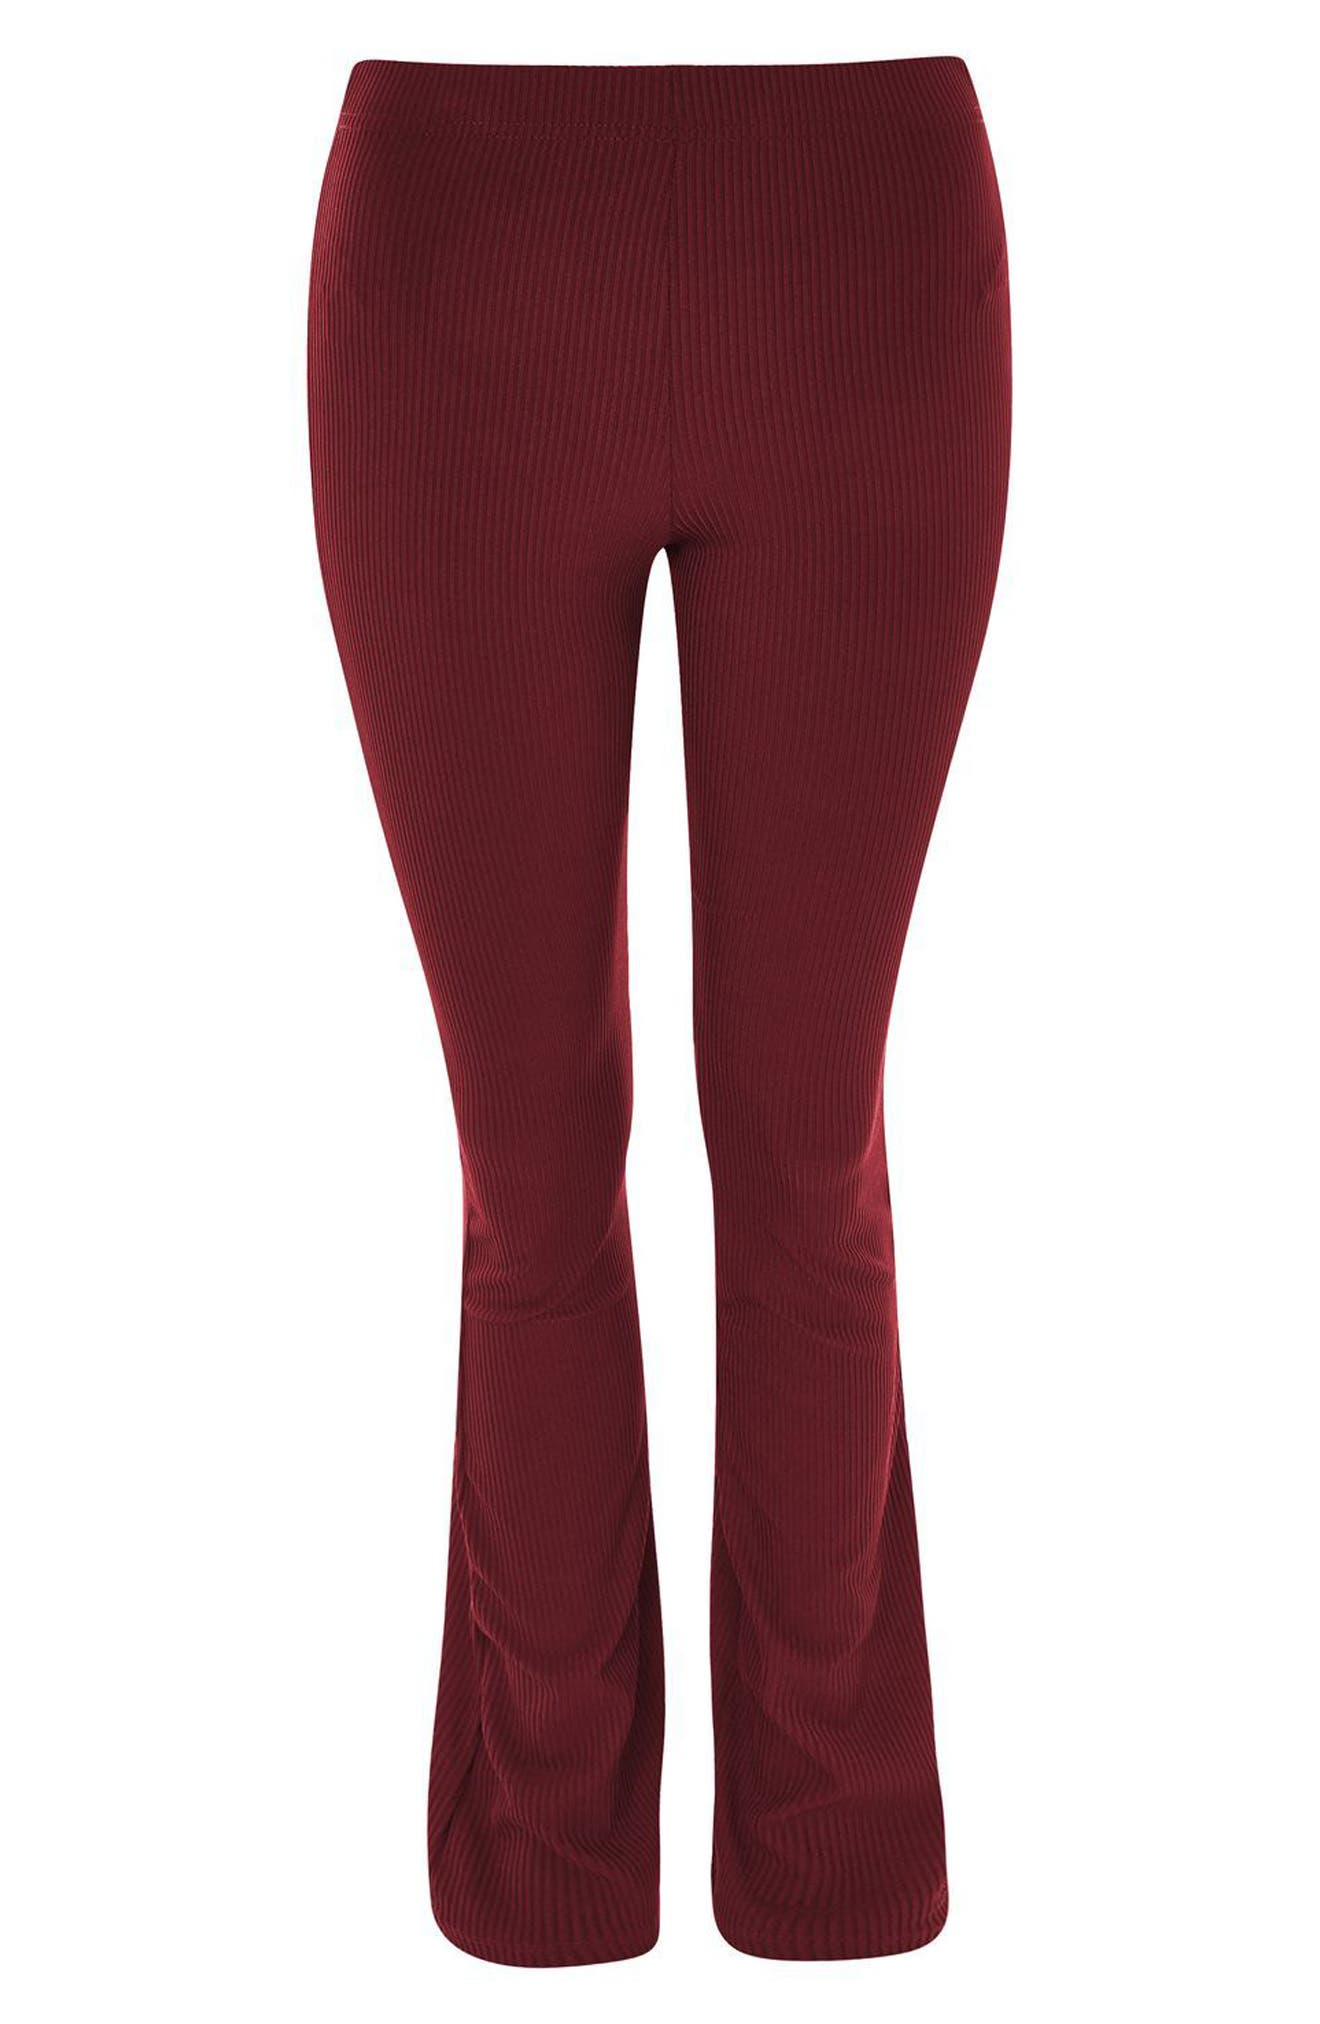 Ribbed Flare Pants,                             Alternate thumbnail 4, color,                             930